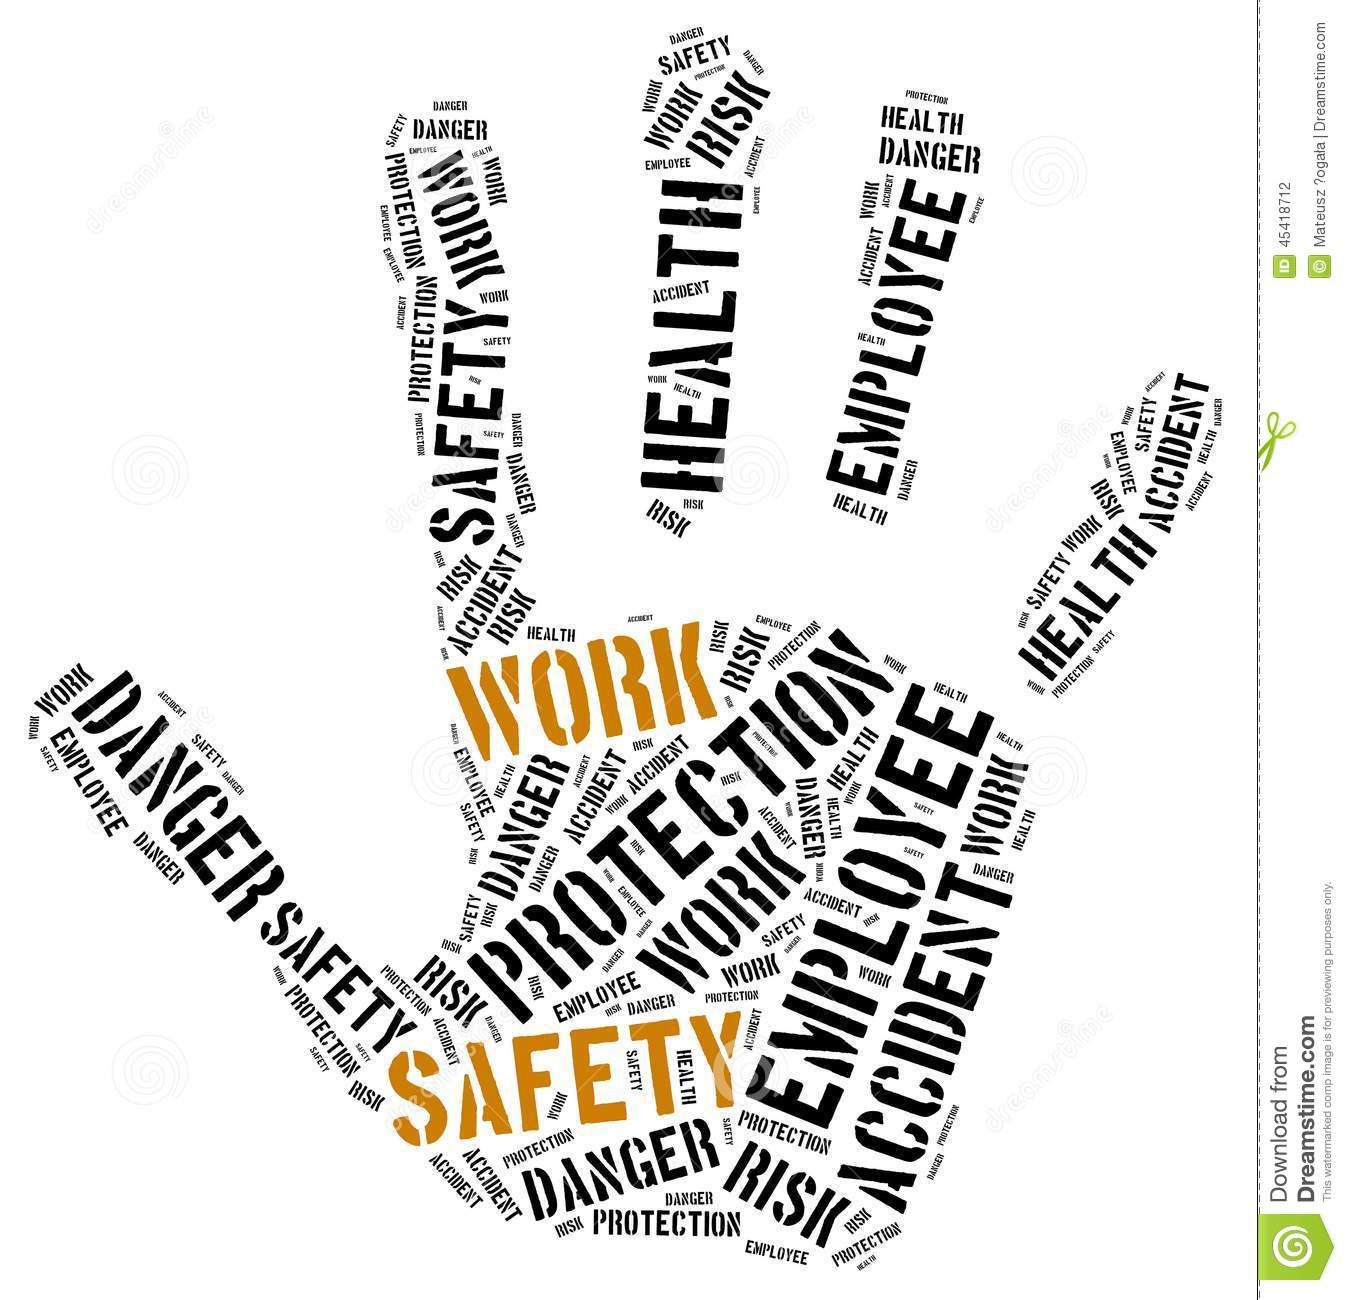 Safety At Work Concept Word Cloud Illustration Stock